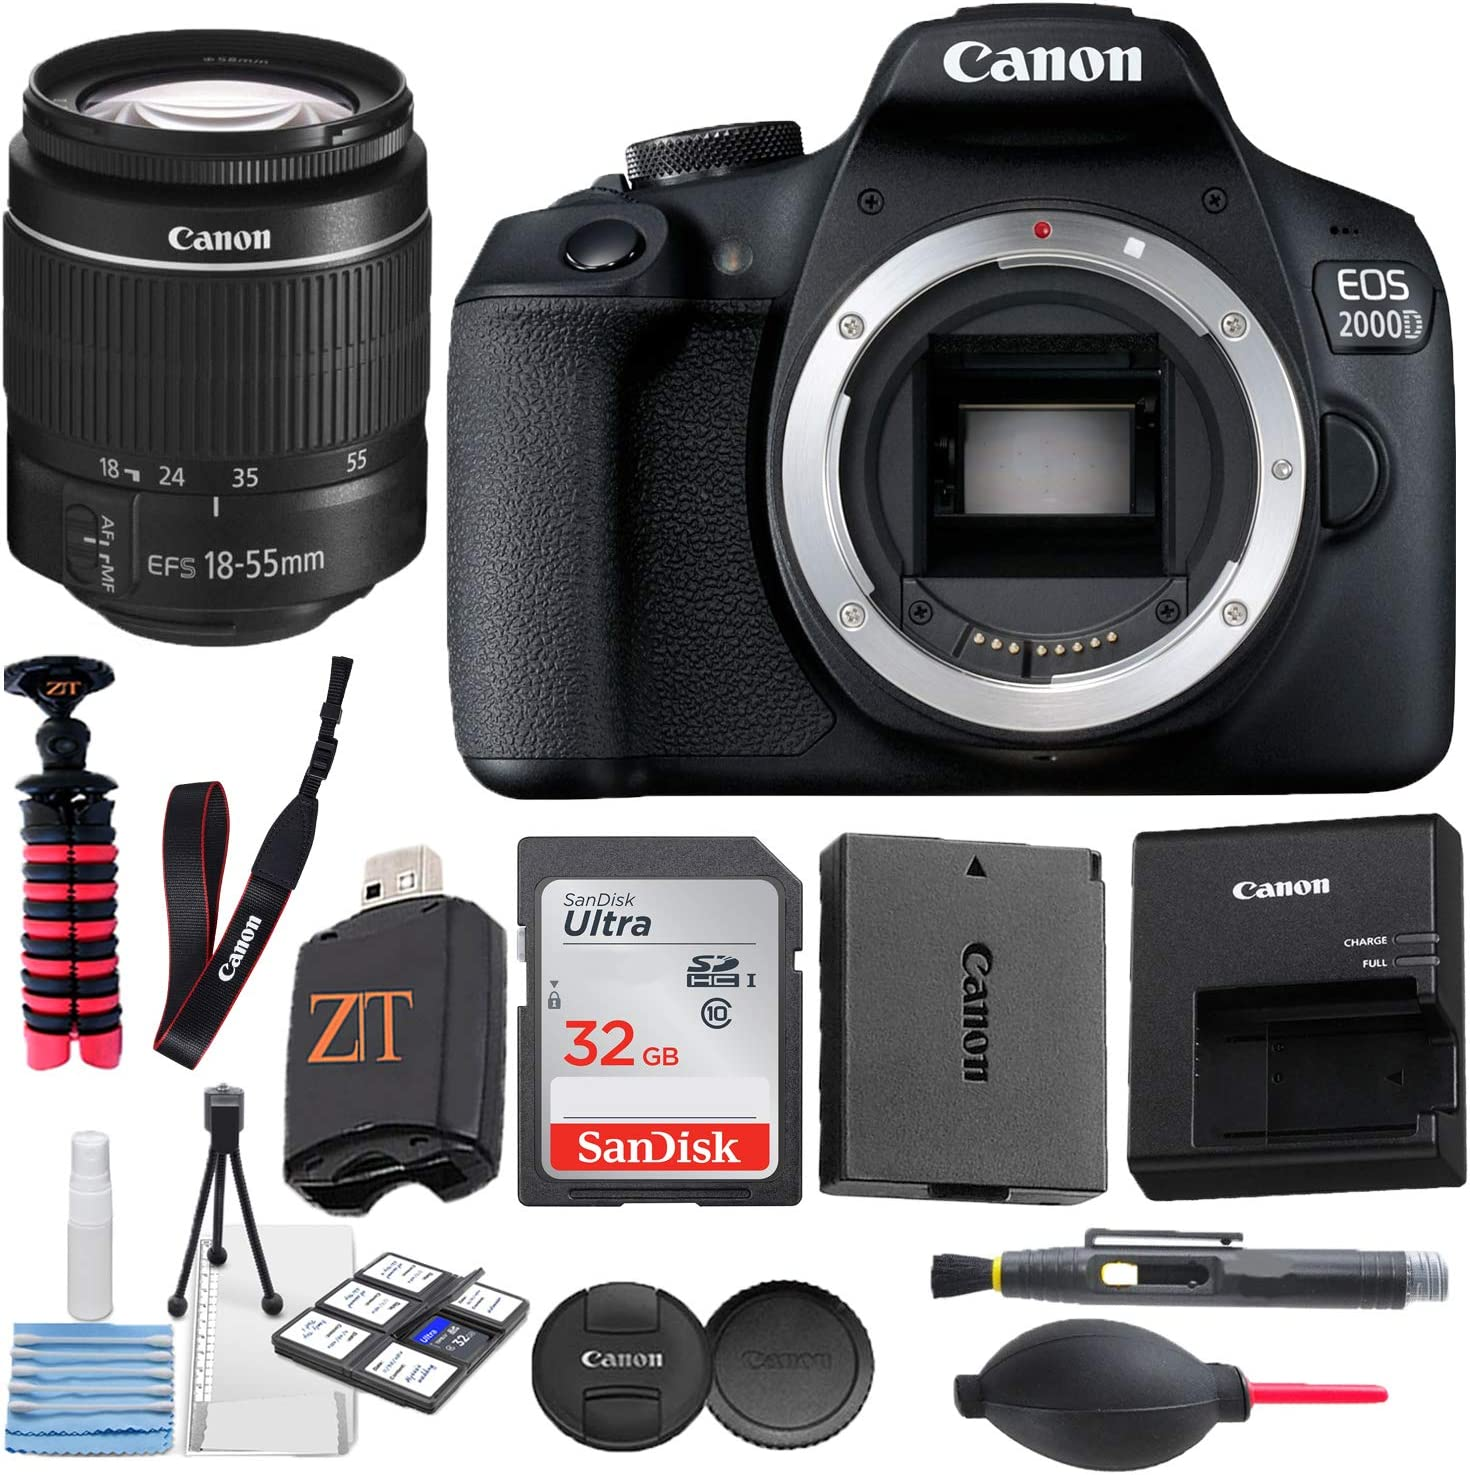 Canon EOS 2000D / Rebel T7 Digital DSLR Camera Body with 24.1MP CMOS Sensor, Built-in WiFi + 18-55mm Lens + Sandisk 32GB SDHC Memory Cards + Tripod + Accessory Bundle